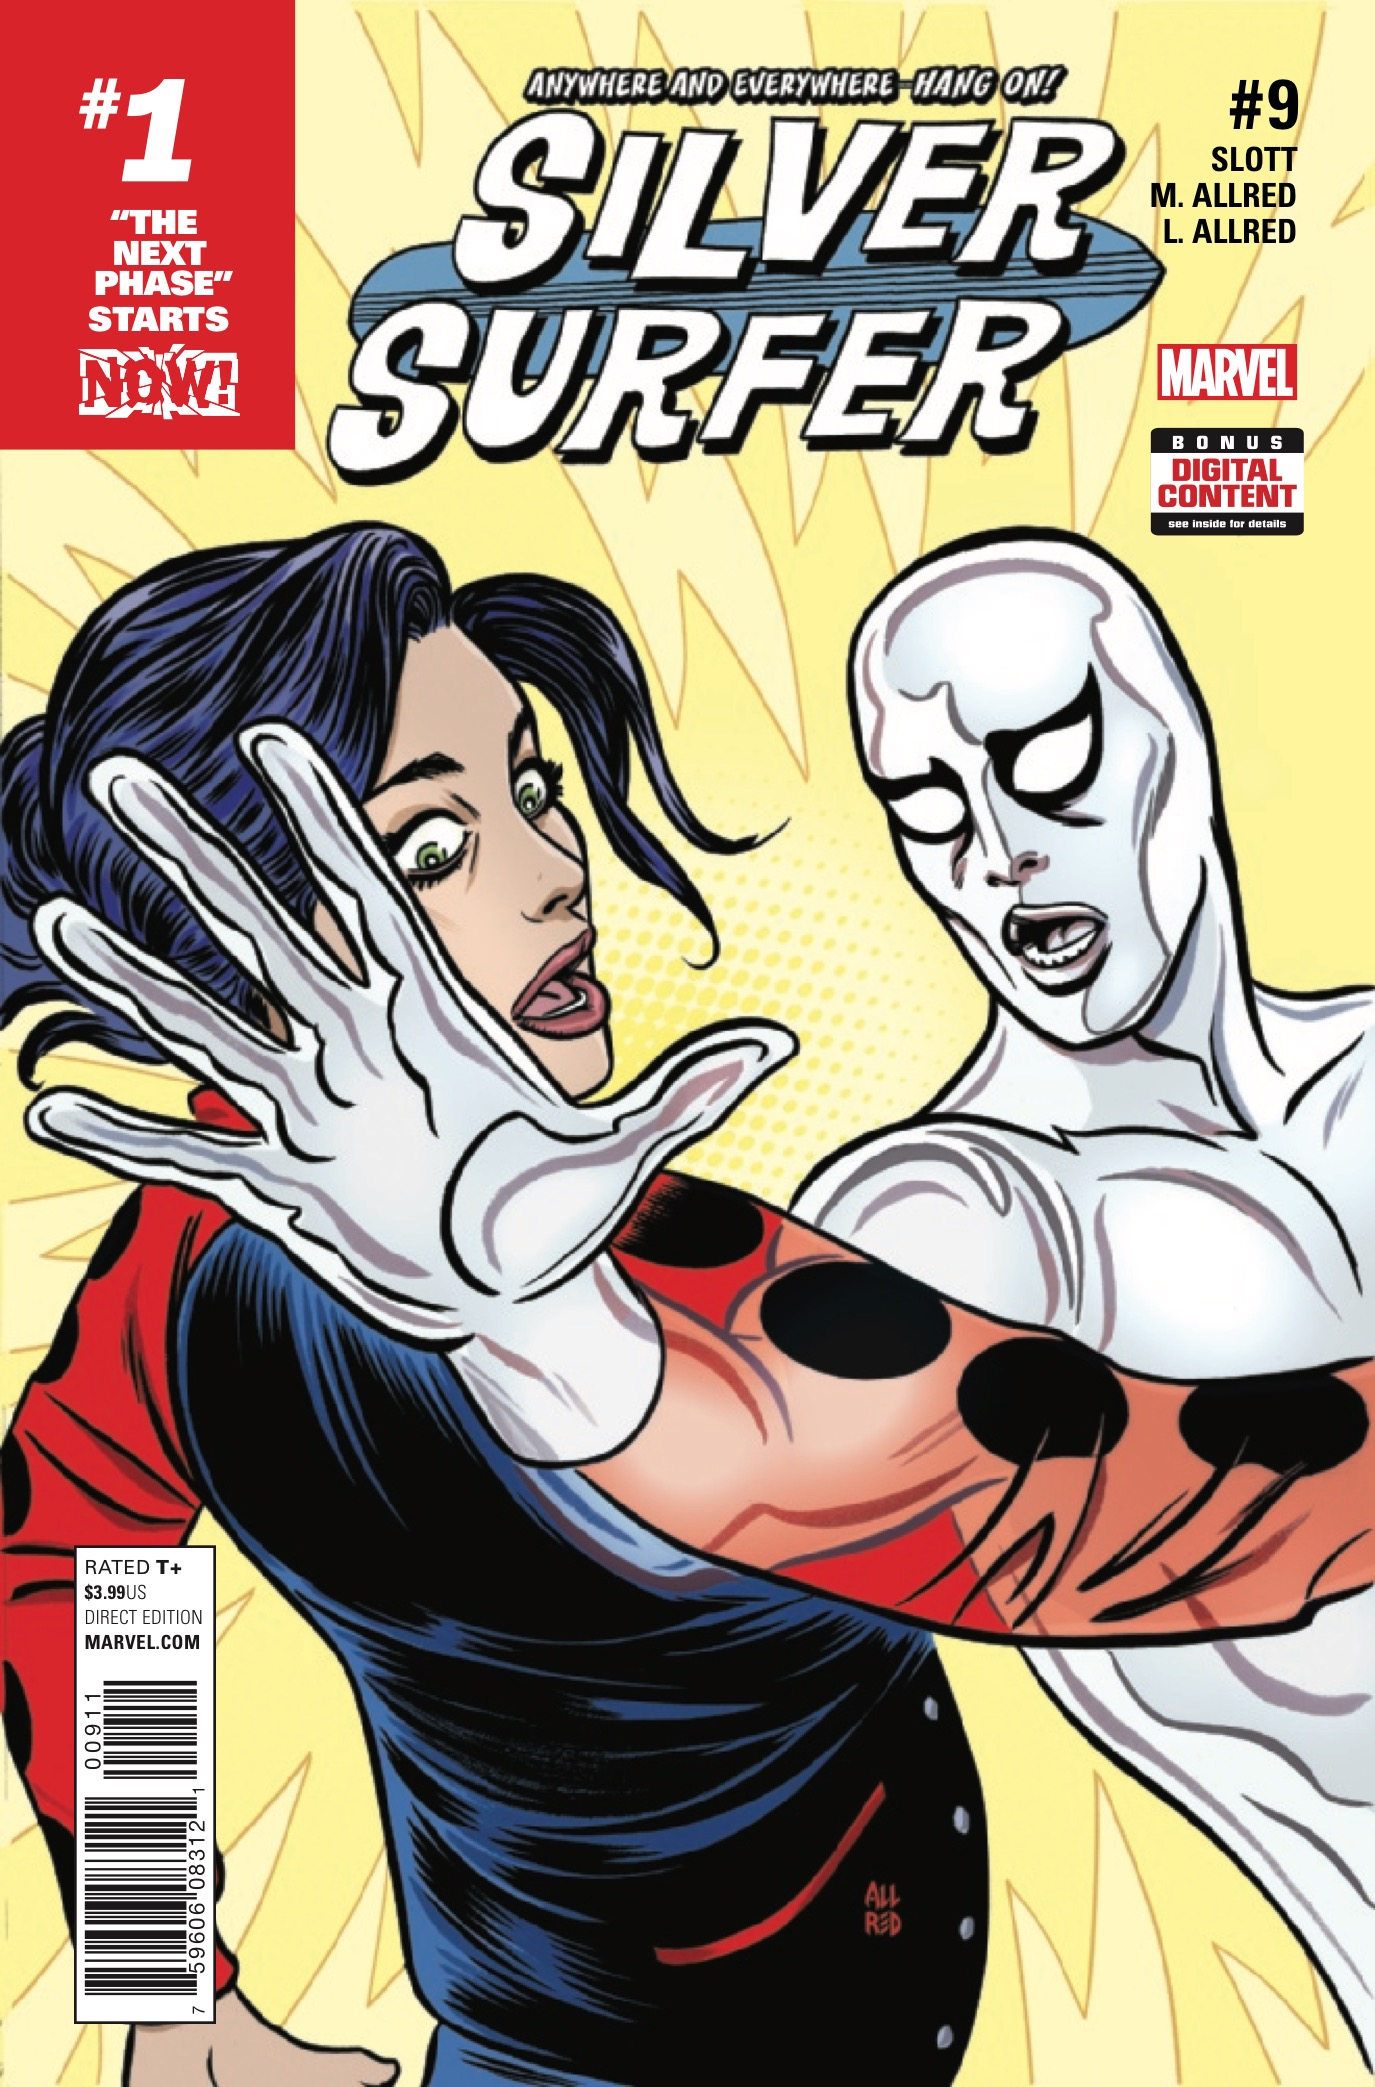 Silver Surfer #9 Review